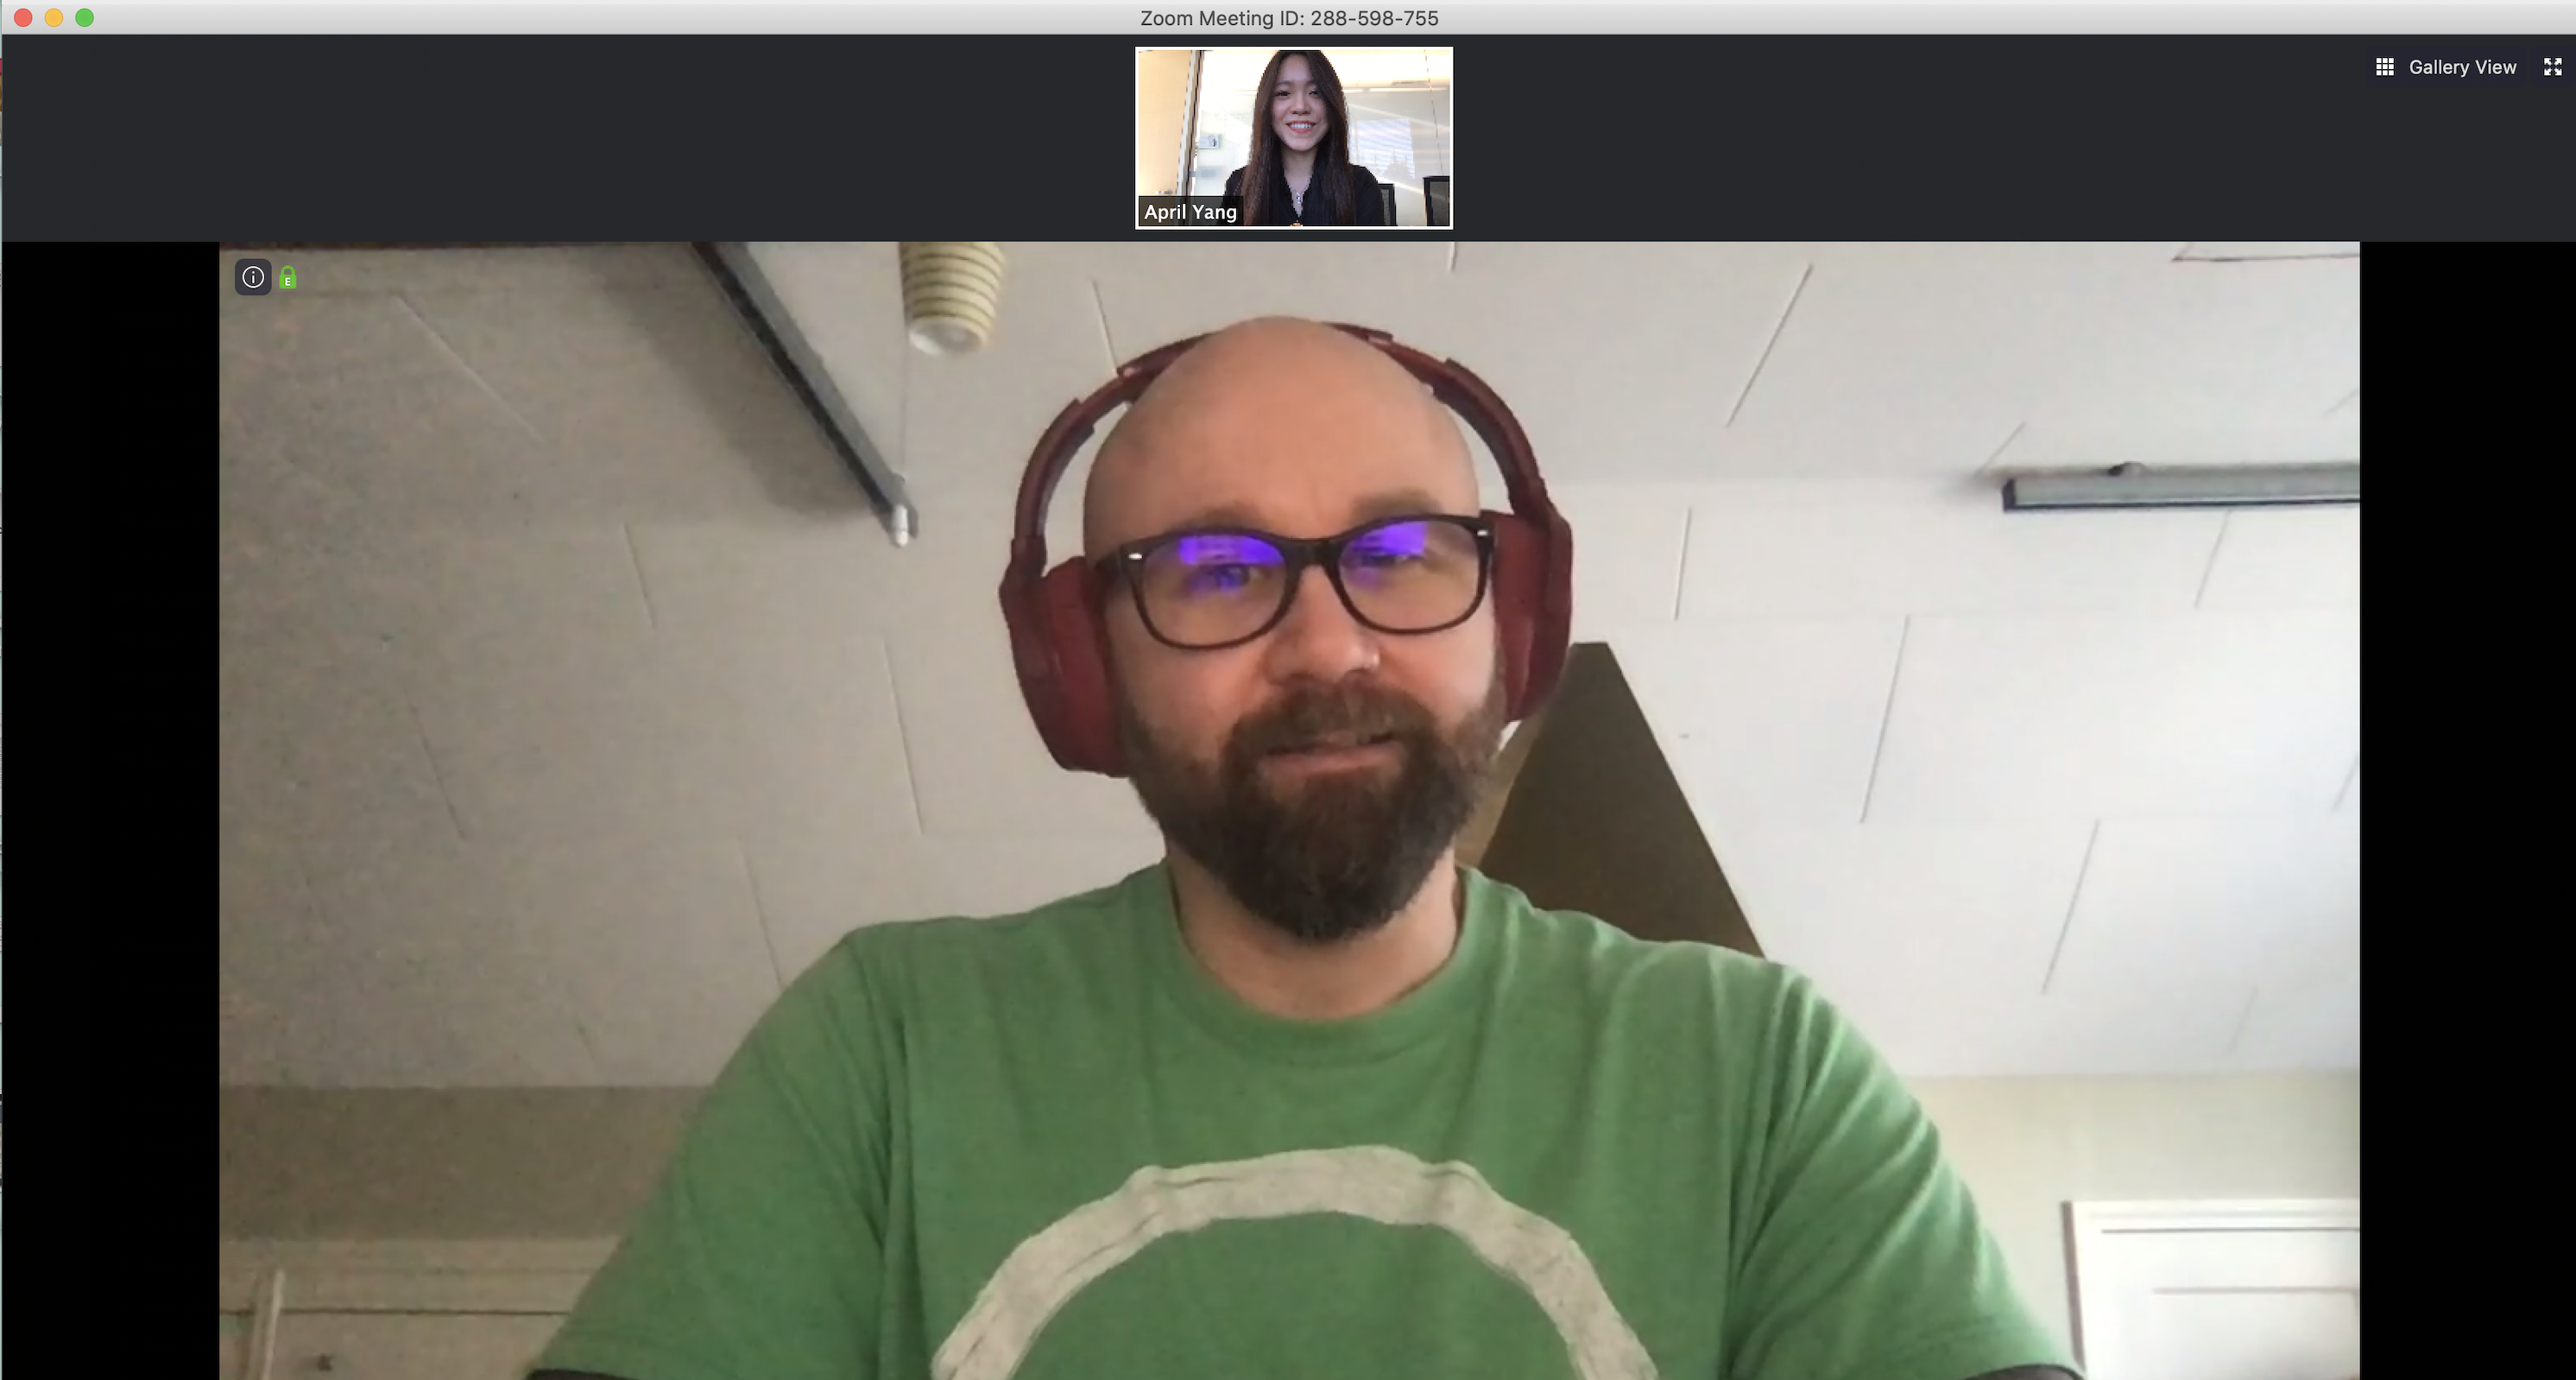 Picture of April on a video chat with another designer for the portfolio review interview